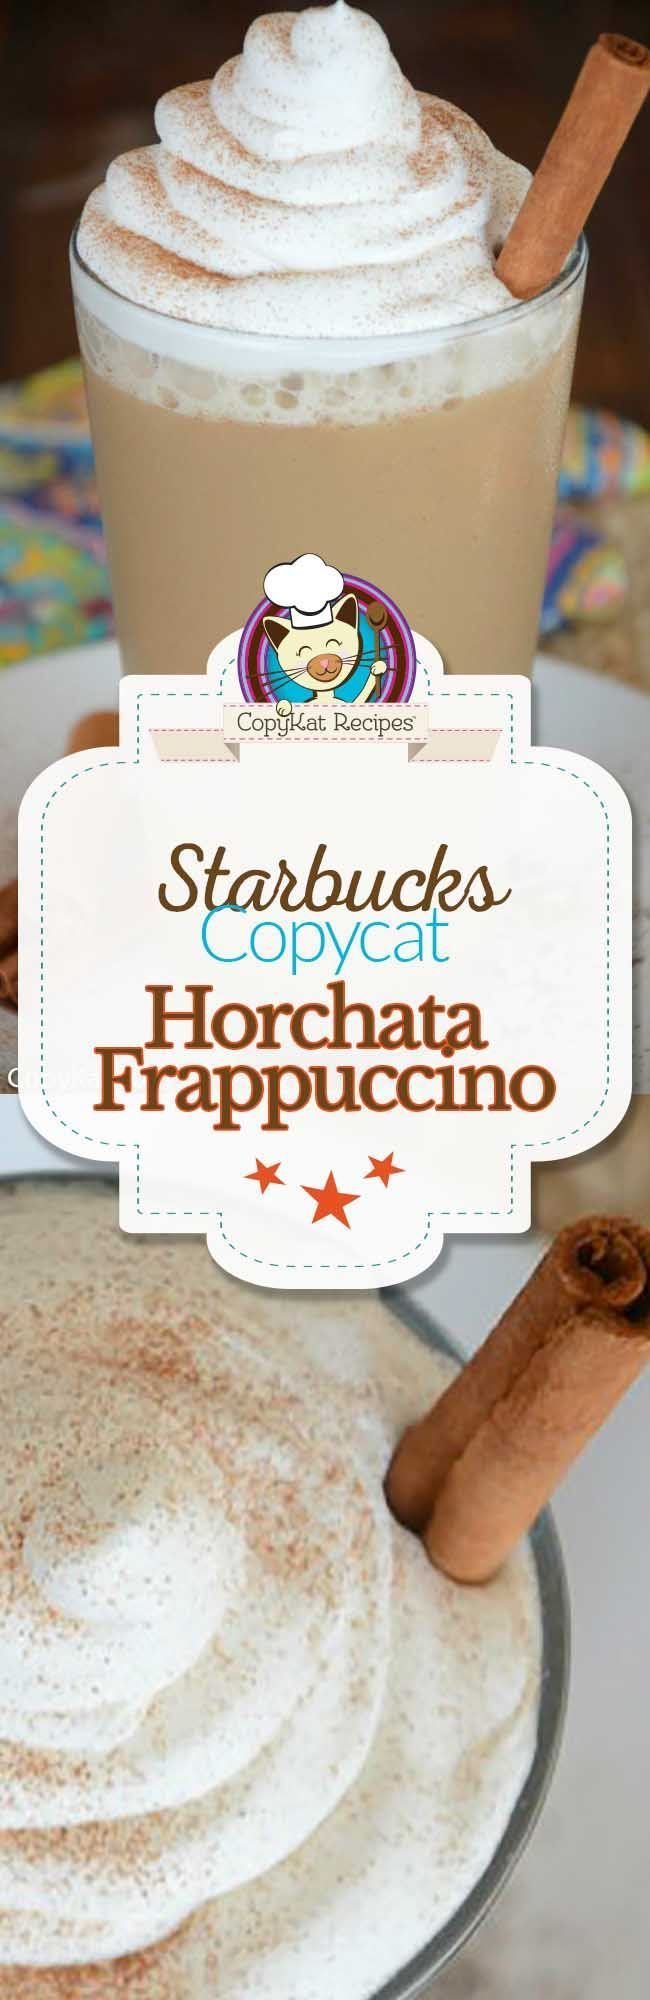 You can recreate the Starbucks Horchata Frappuccino at home with this easy copycat recipe.